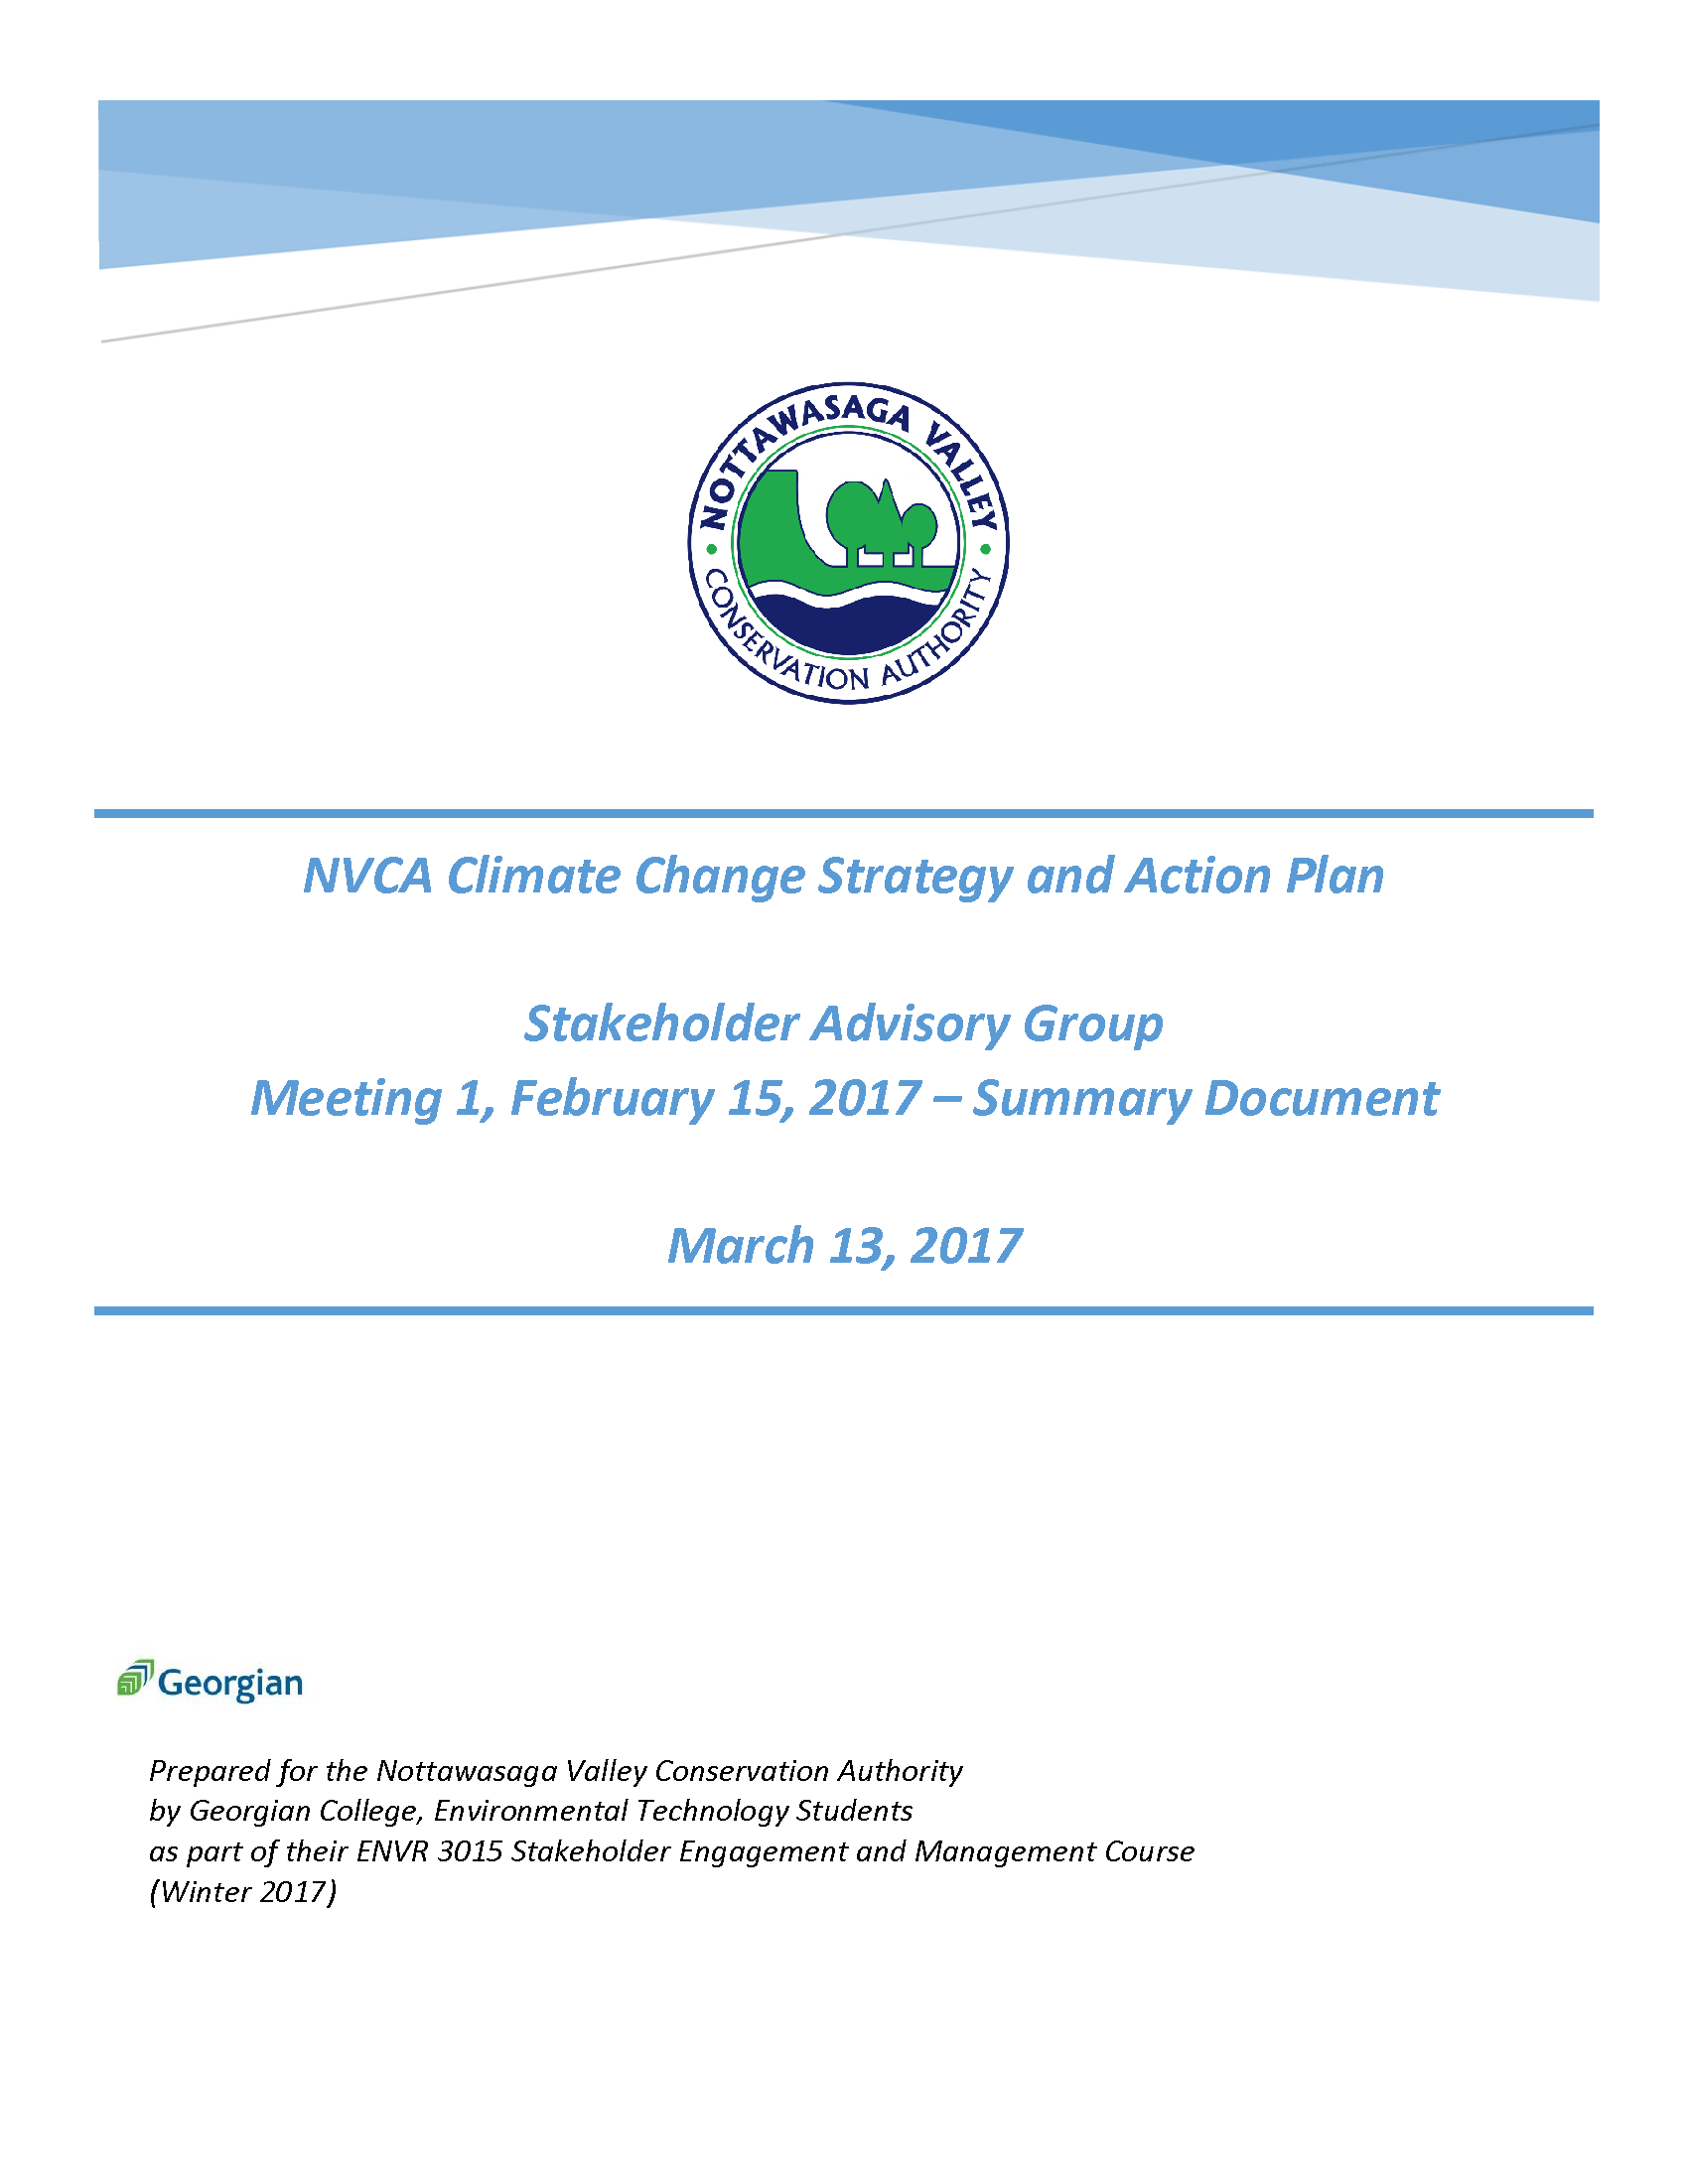 Climate Change Stakeholder Report Meeting 1 Title Page.png